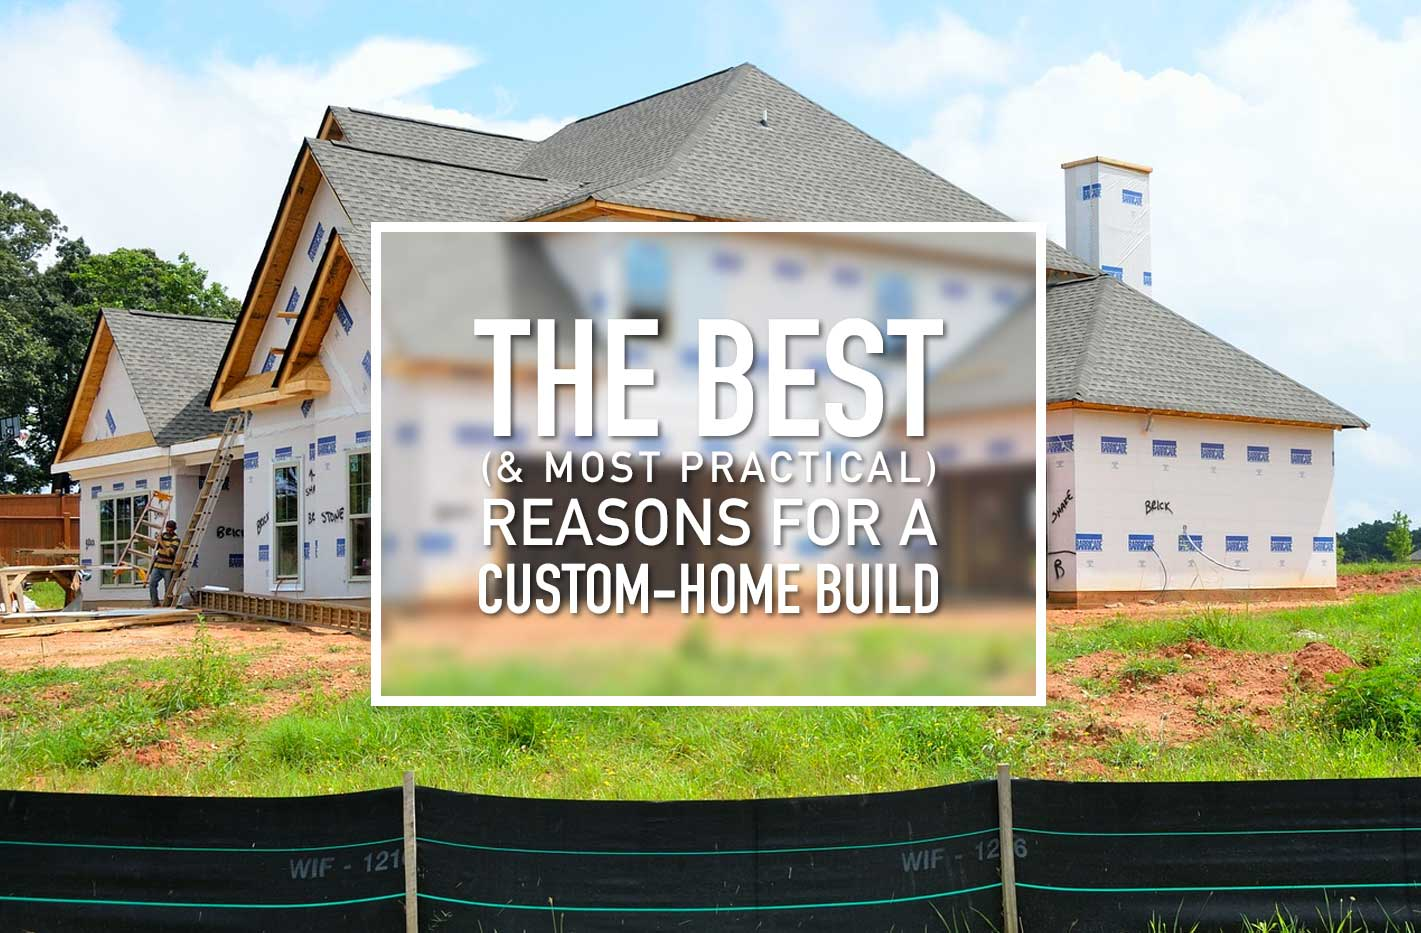 Custom-Home Build